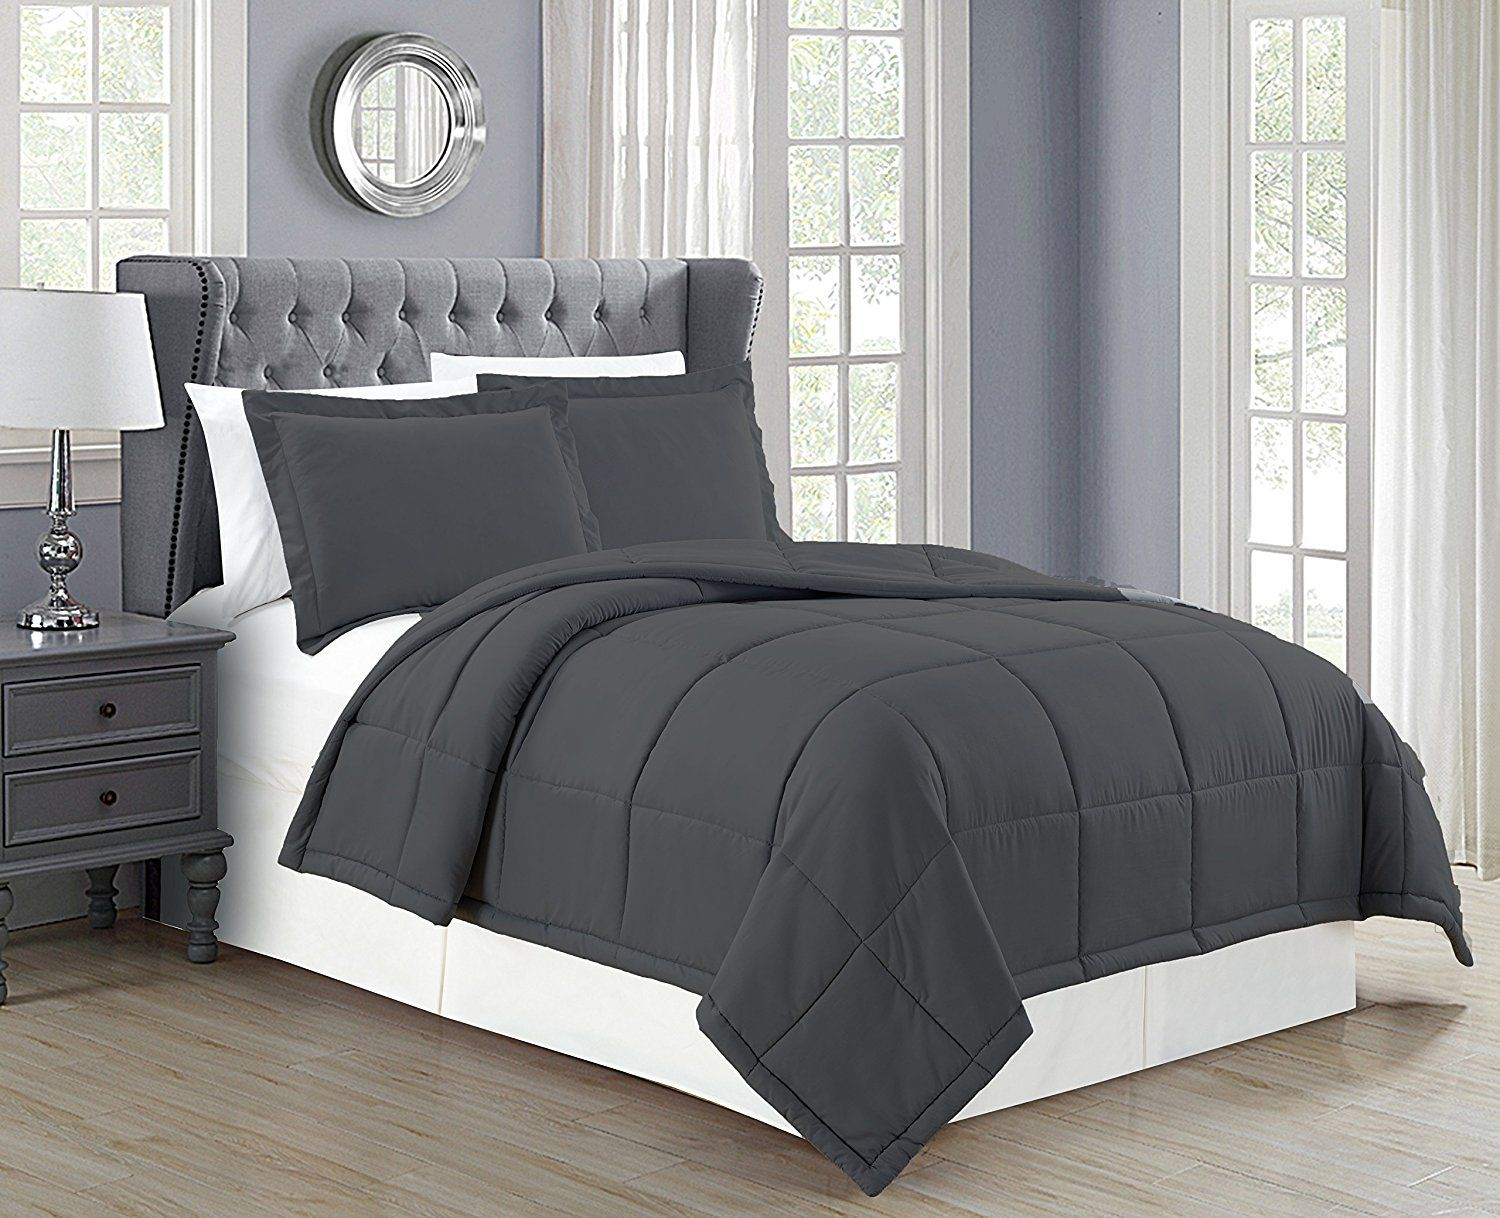 ae7ca4f05123 Mk Collection Down Alternative Comforter Set 3pc King Solid Charcoal/Dark  Grey New